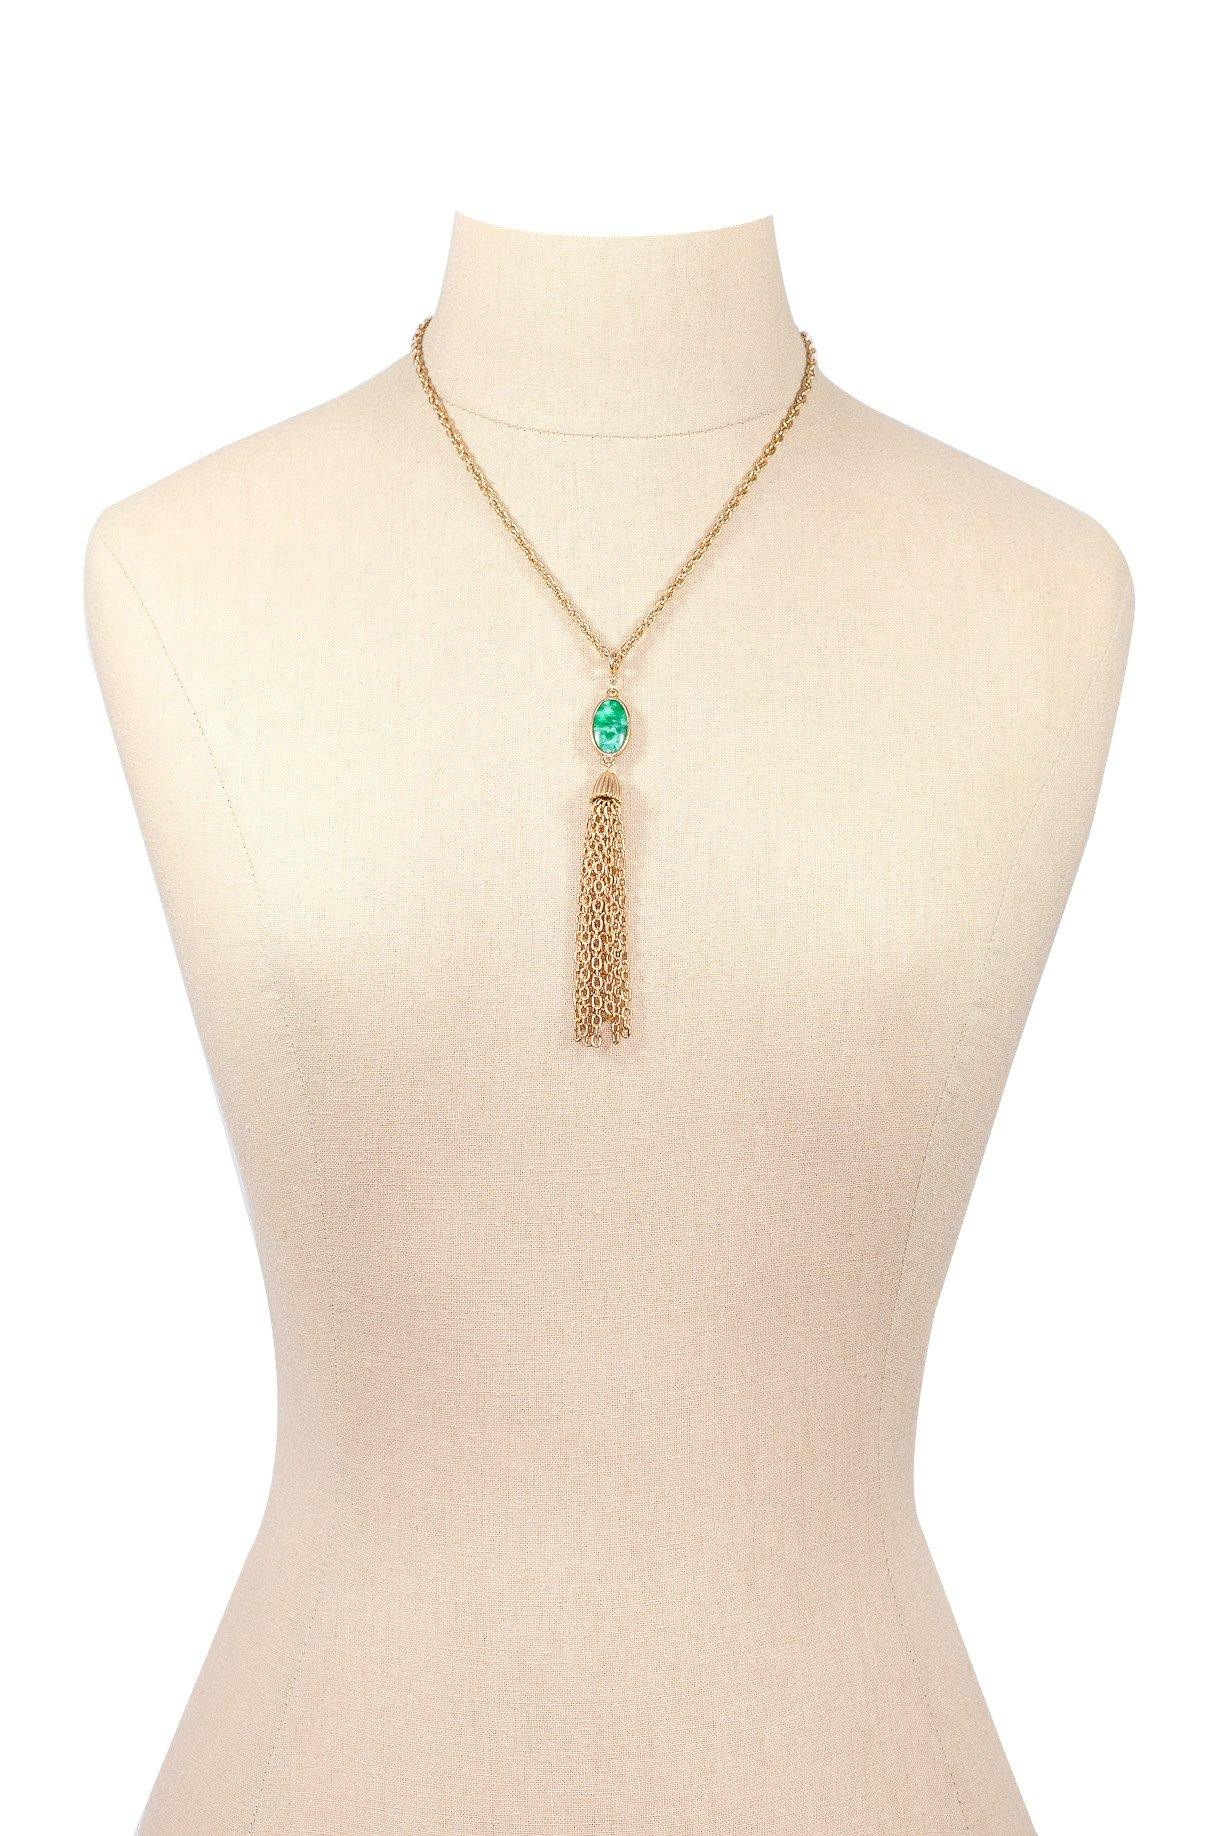 60's__Vintage__Dainty Tassel Necklace